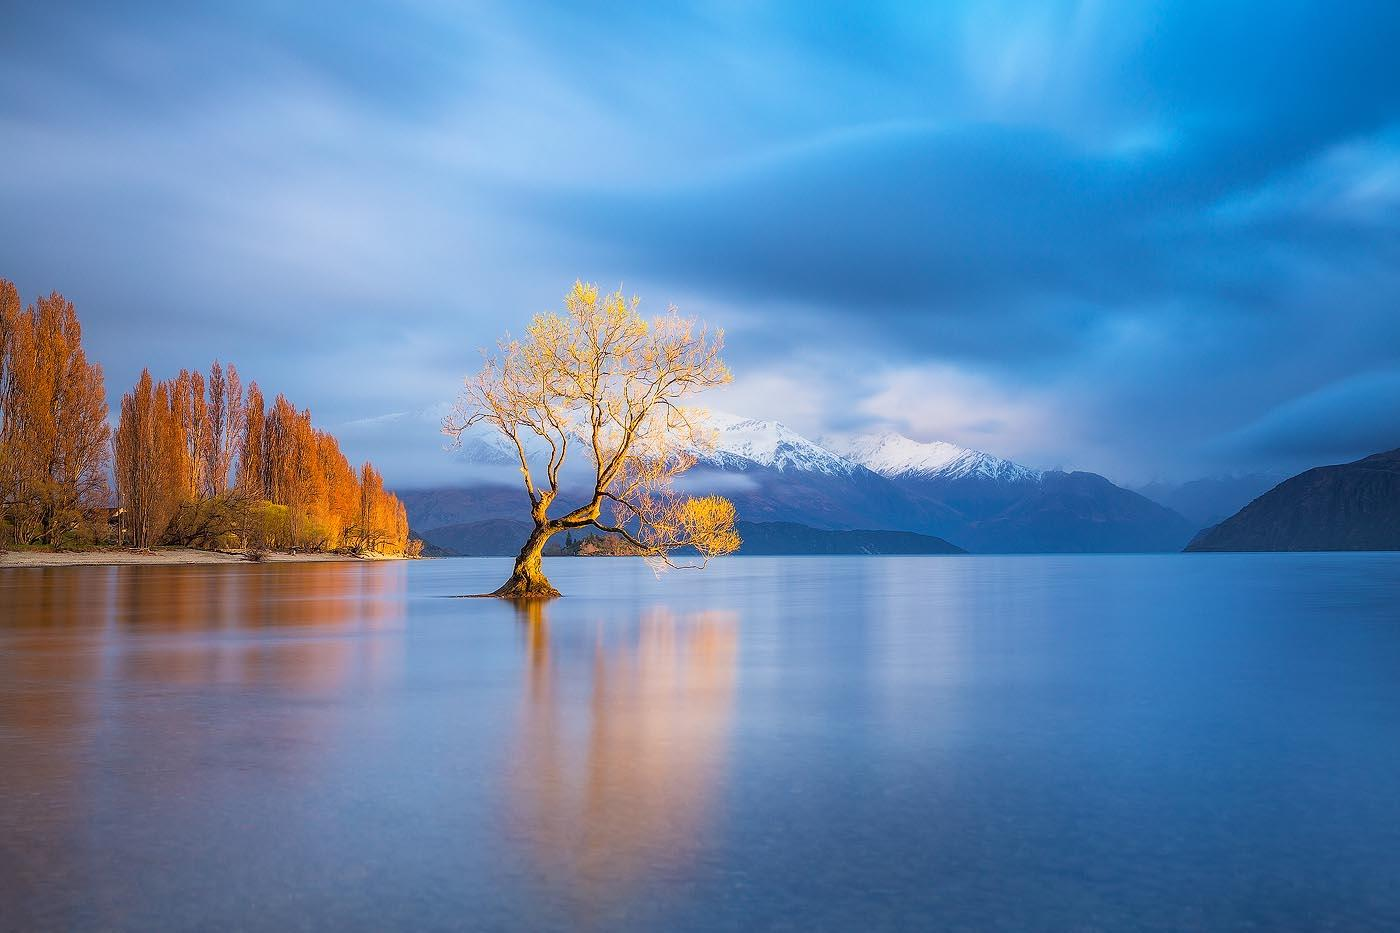 That Wanaka Tree - Lake Wanaka